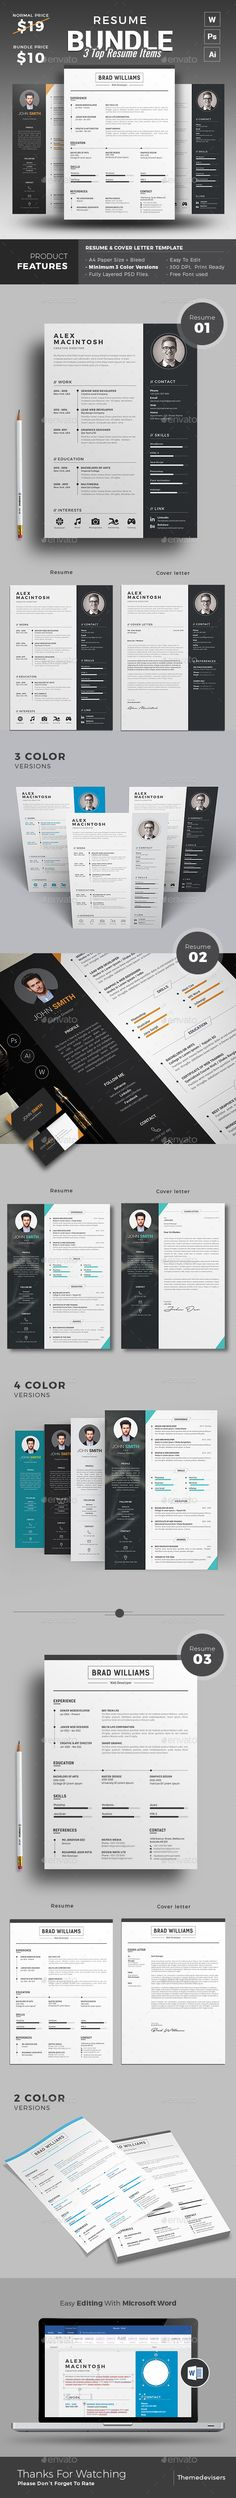 Awesome Resume Bundle, Save more than 50% Today. Only available at https://graphicriver.net/item/resume/17989391?ref=themedevisers